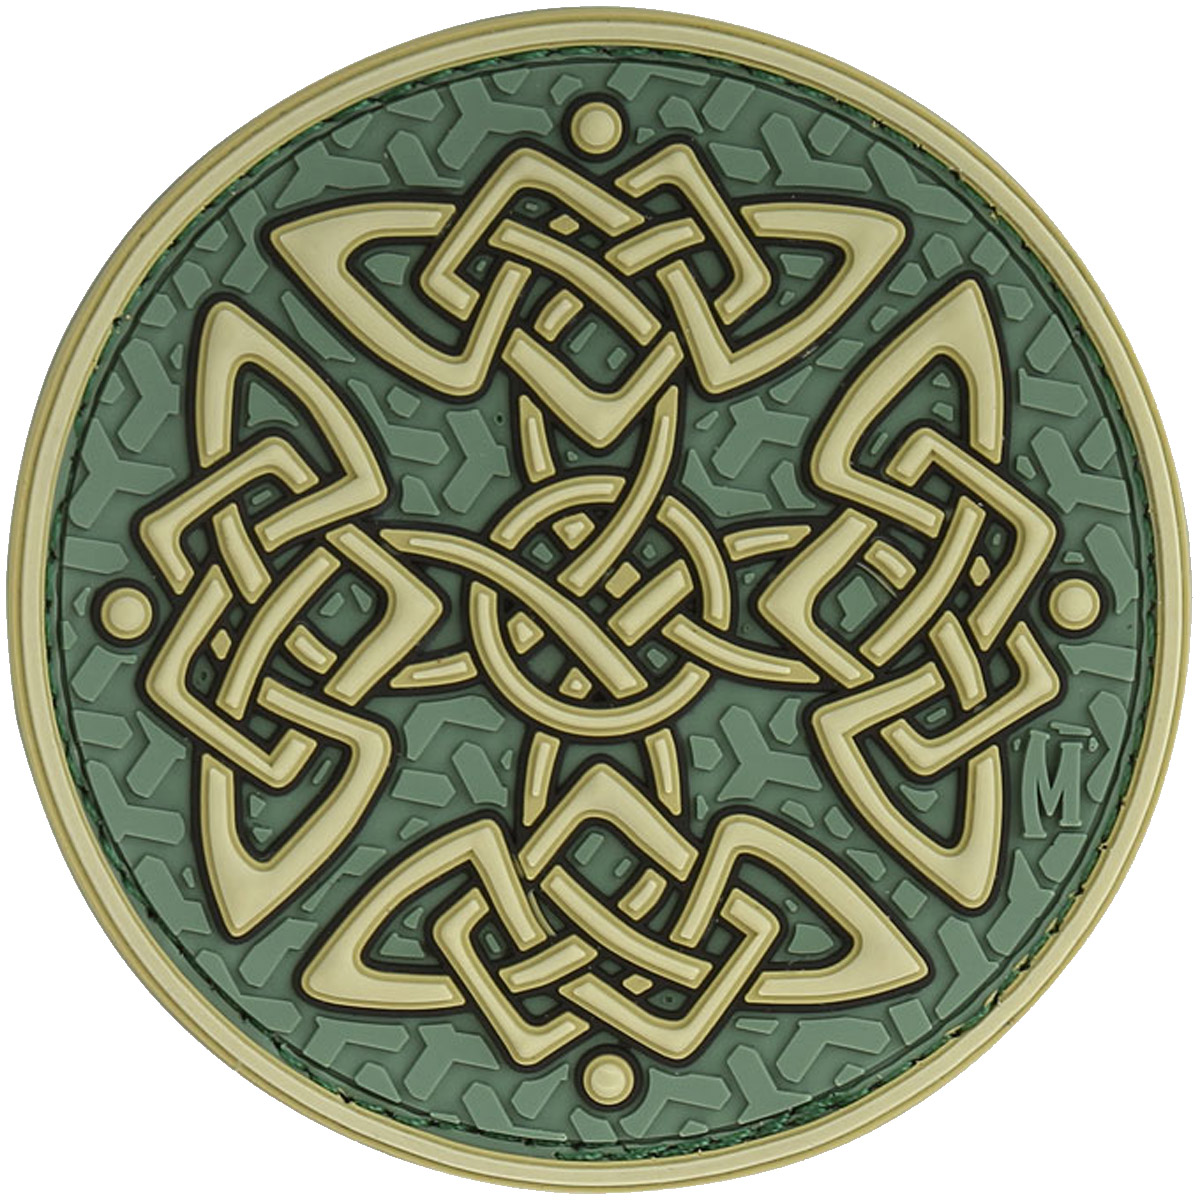 Maxpedition Celtic Cross Full Colour Morale Patch